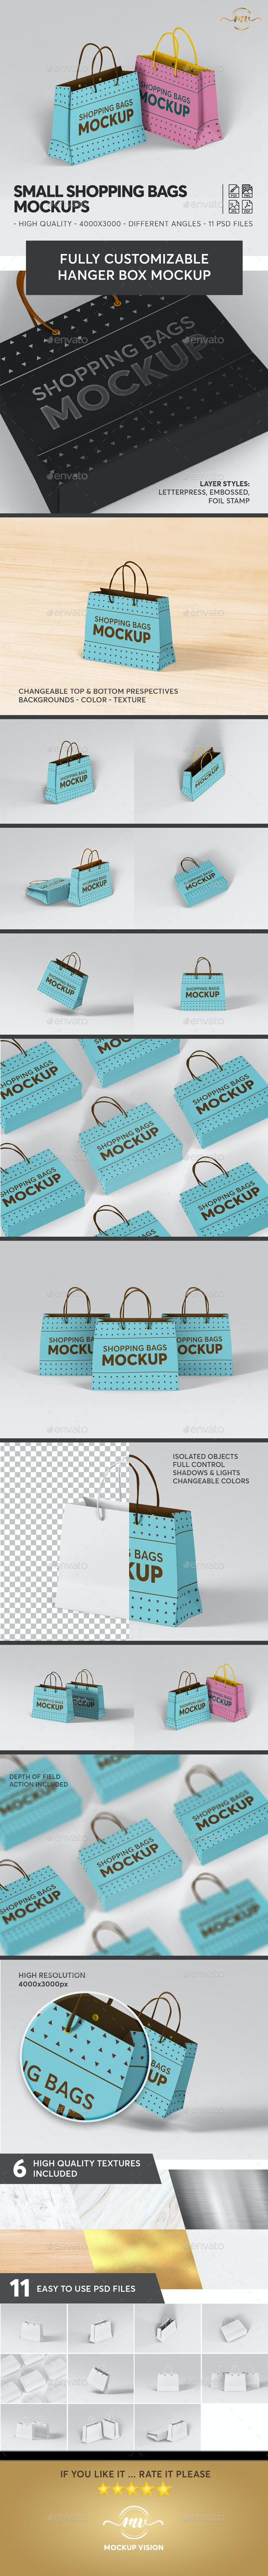 Small Shopping Bags Mockups - Stationery Print